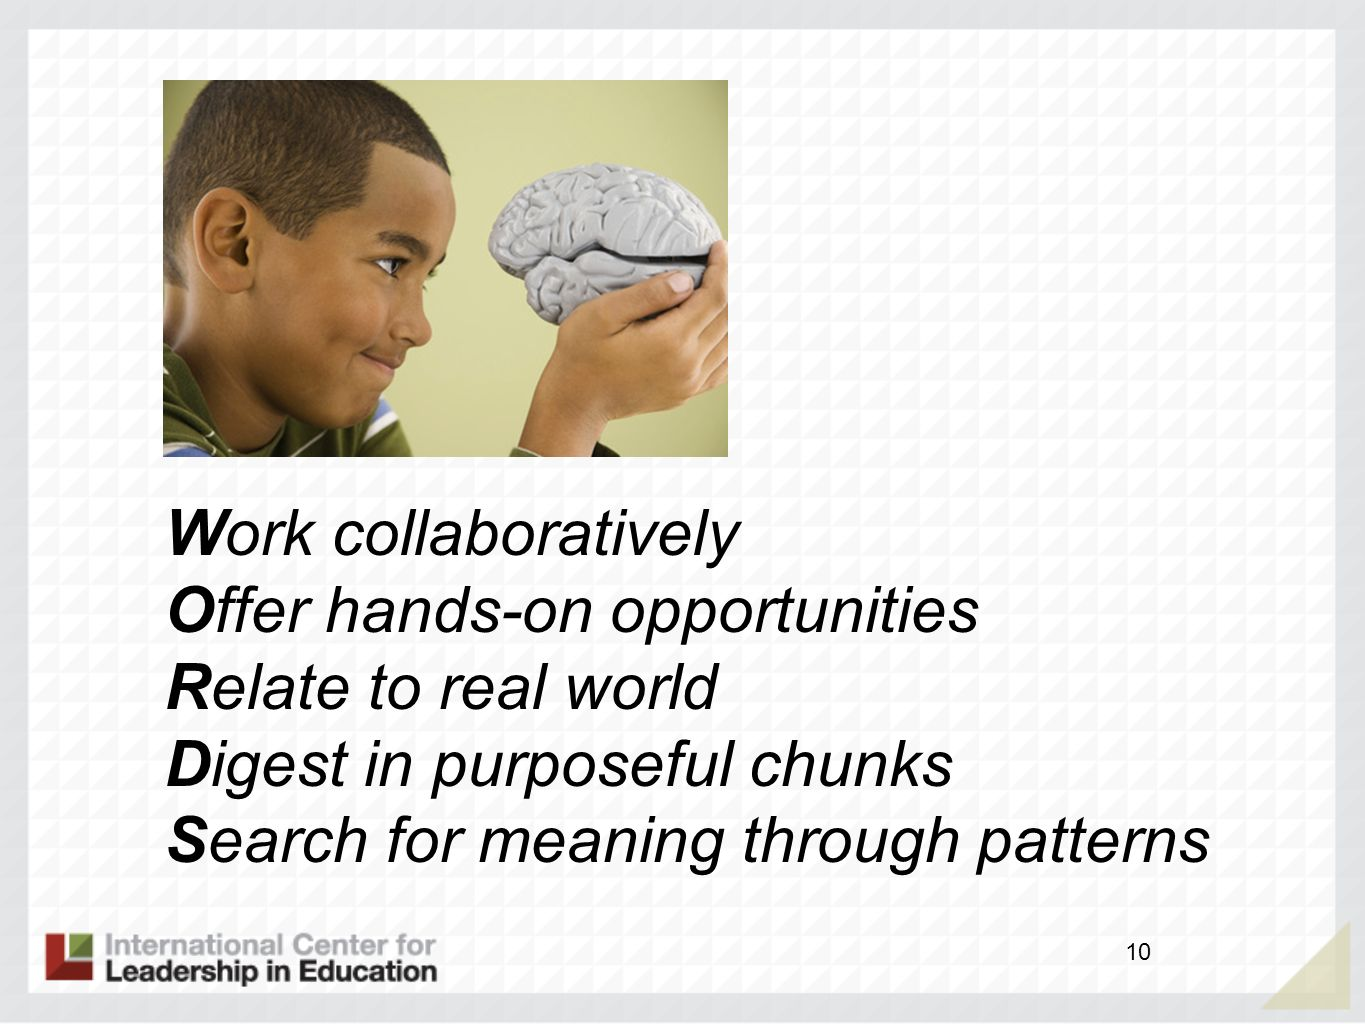 Work collaboratively Offer hands-on opportunities. Relate to real world. Digest in purposeful chunks.